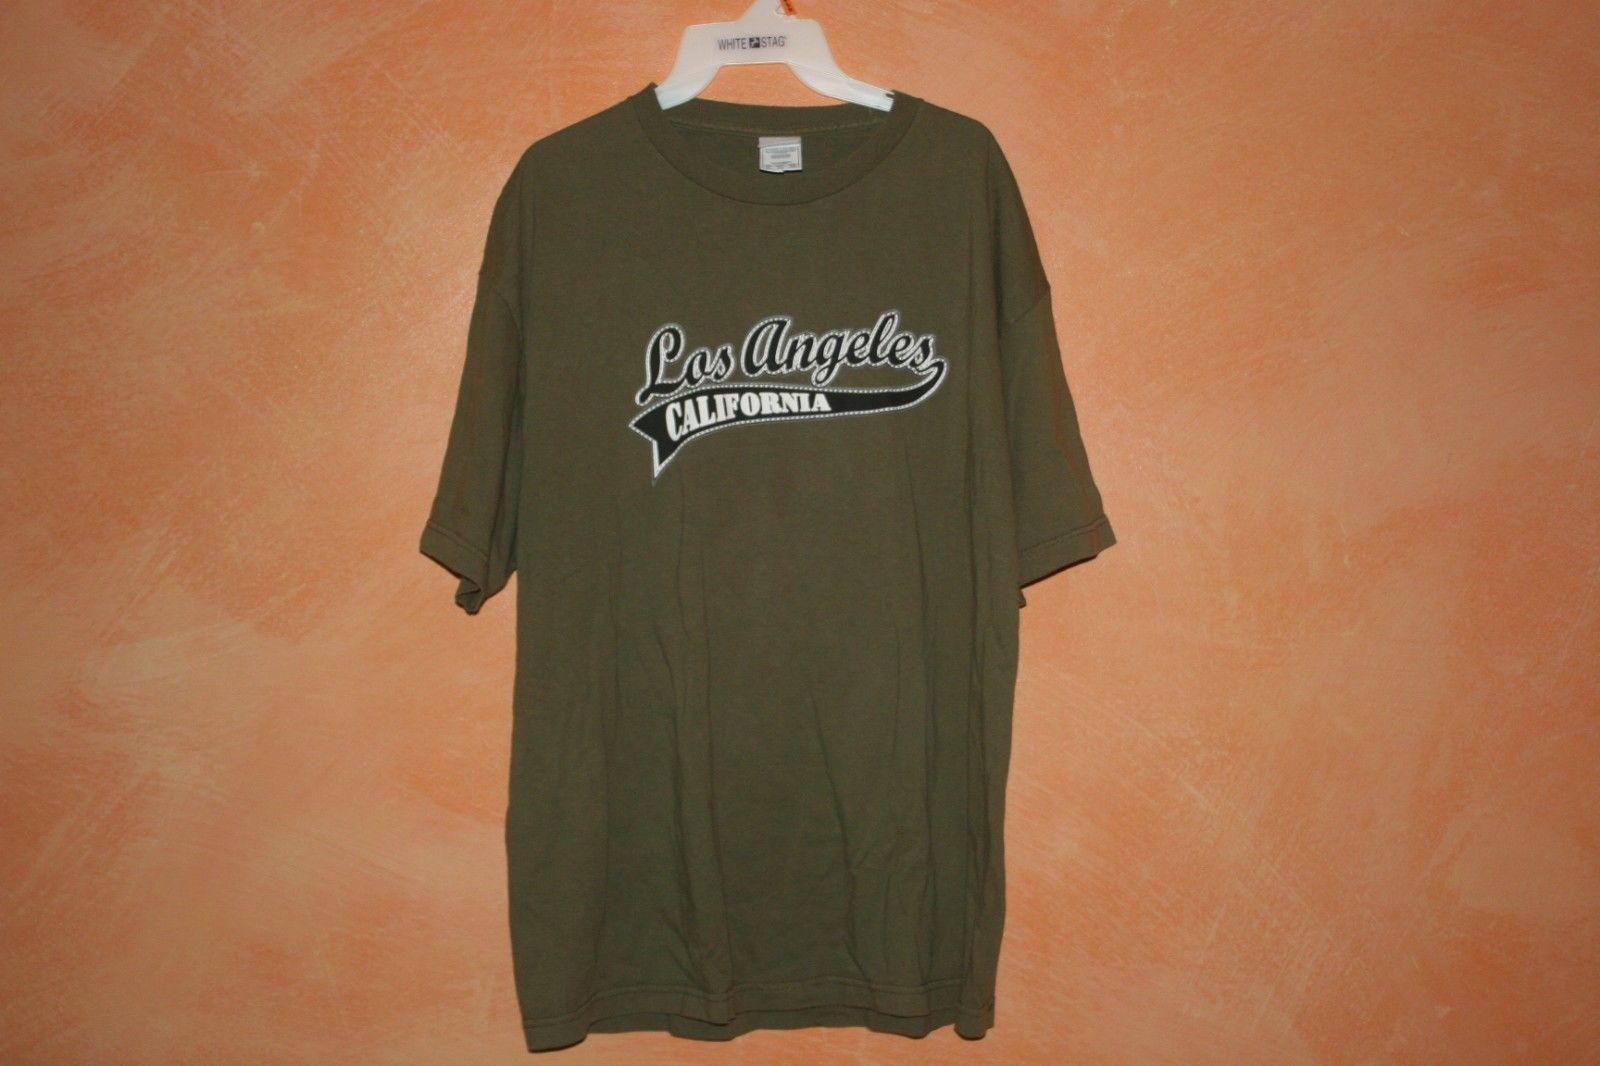 Primary image for LOS ANGELES CALIFORNIA TEE T SHIRT Size Men's Large